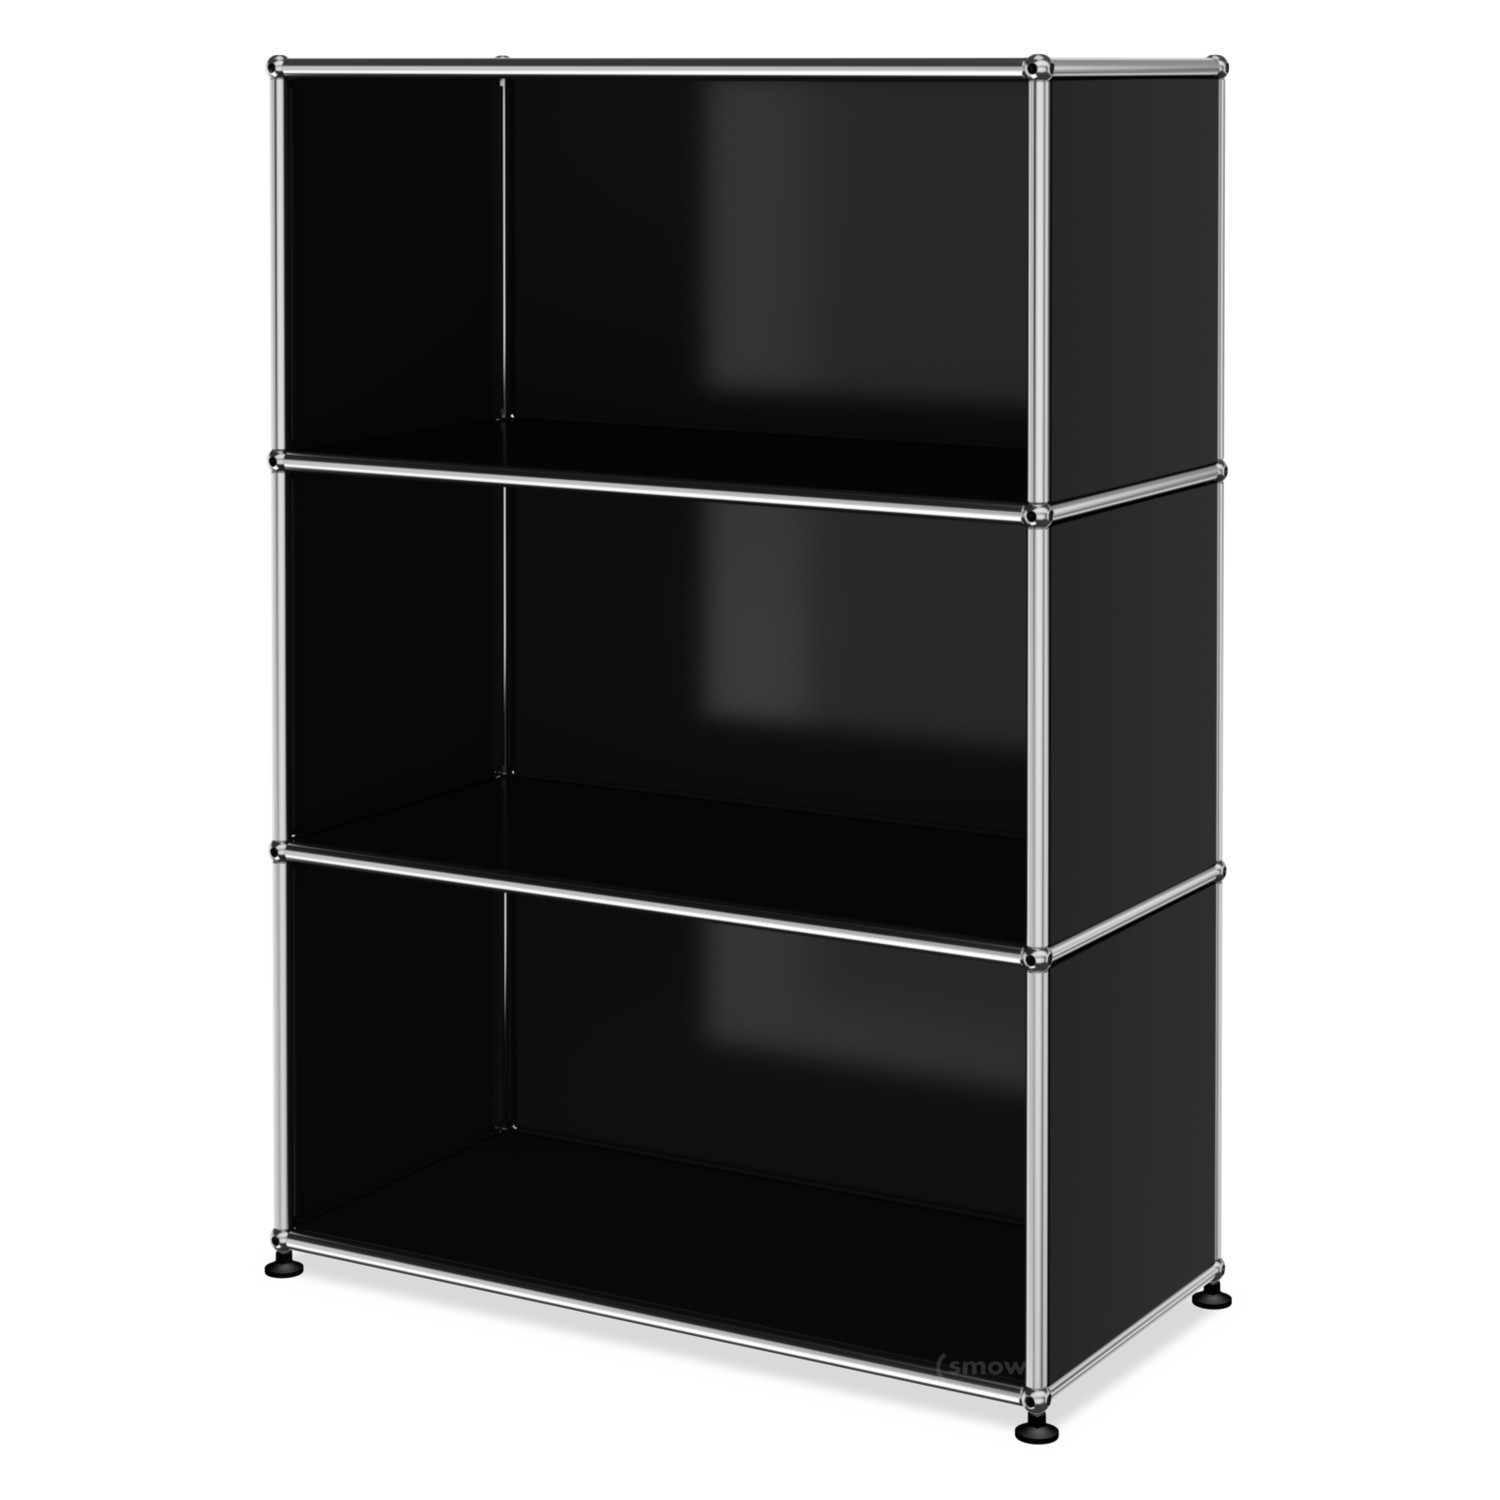 usm haller highboard m open by fritz haller paul sch rer designer furniture by. Black Bedroom Furniture Sets. Home Design Ideas